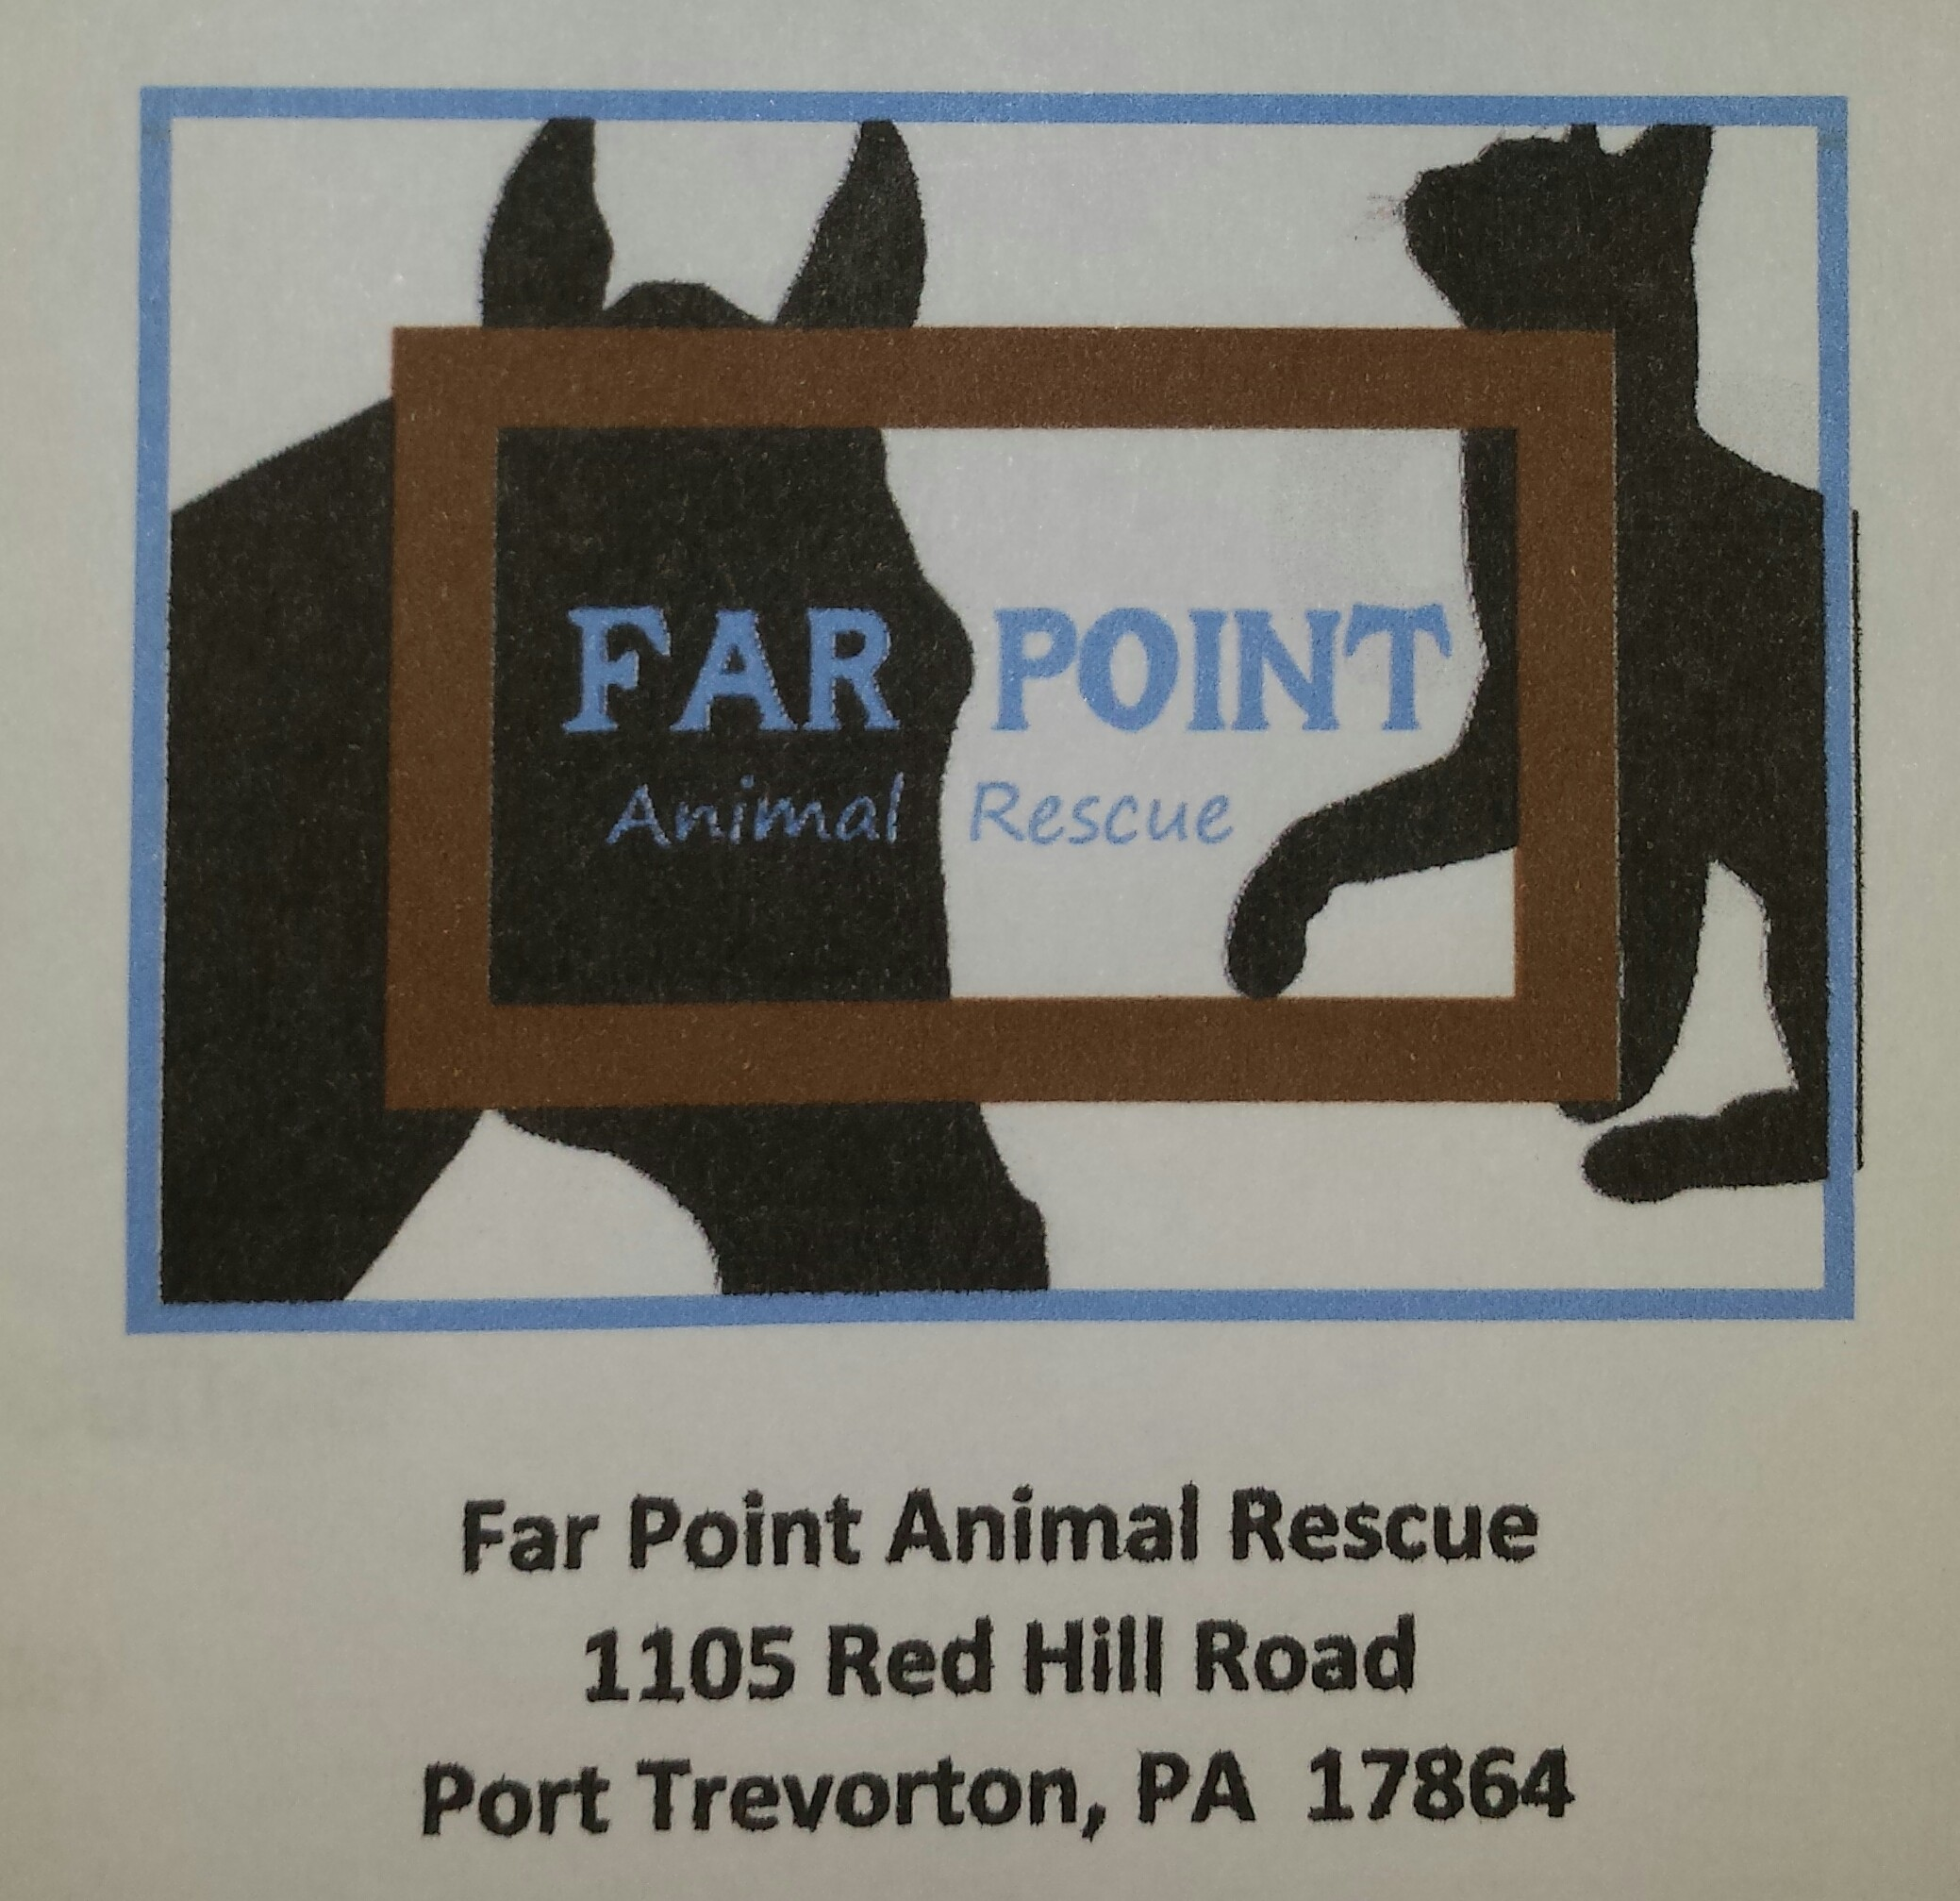 Far Point Animal Rescue